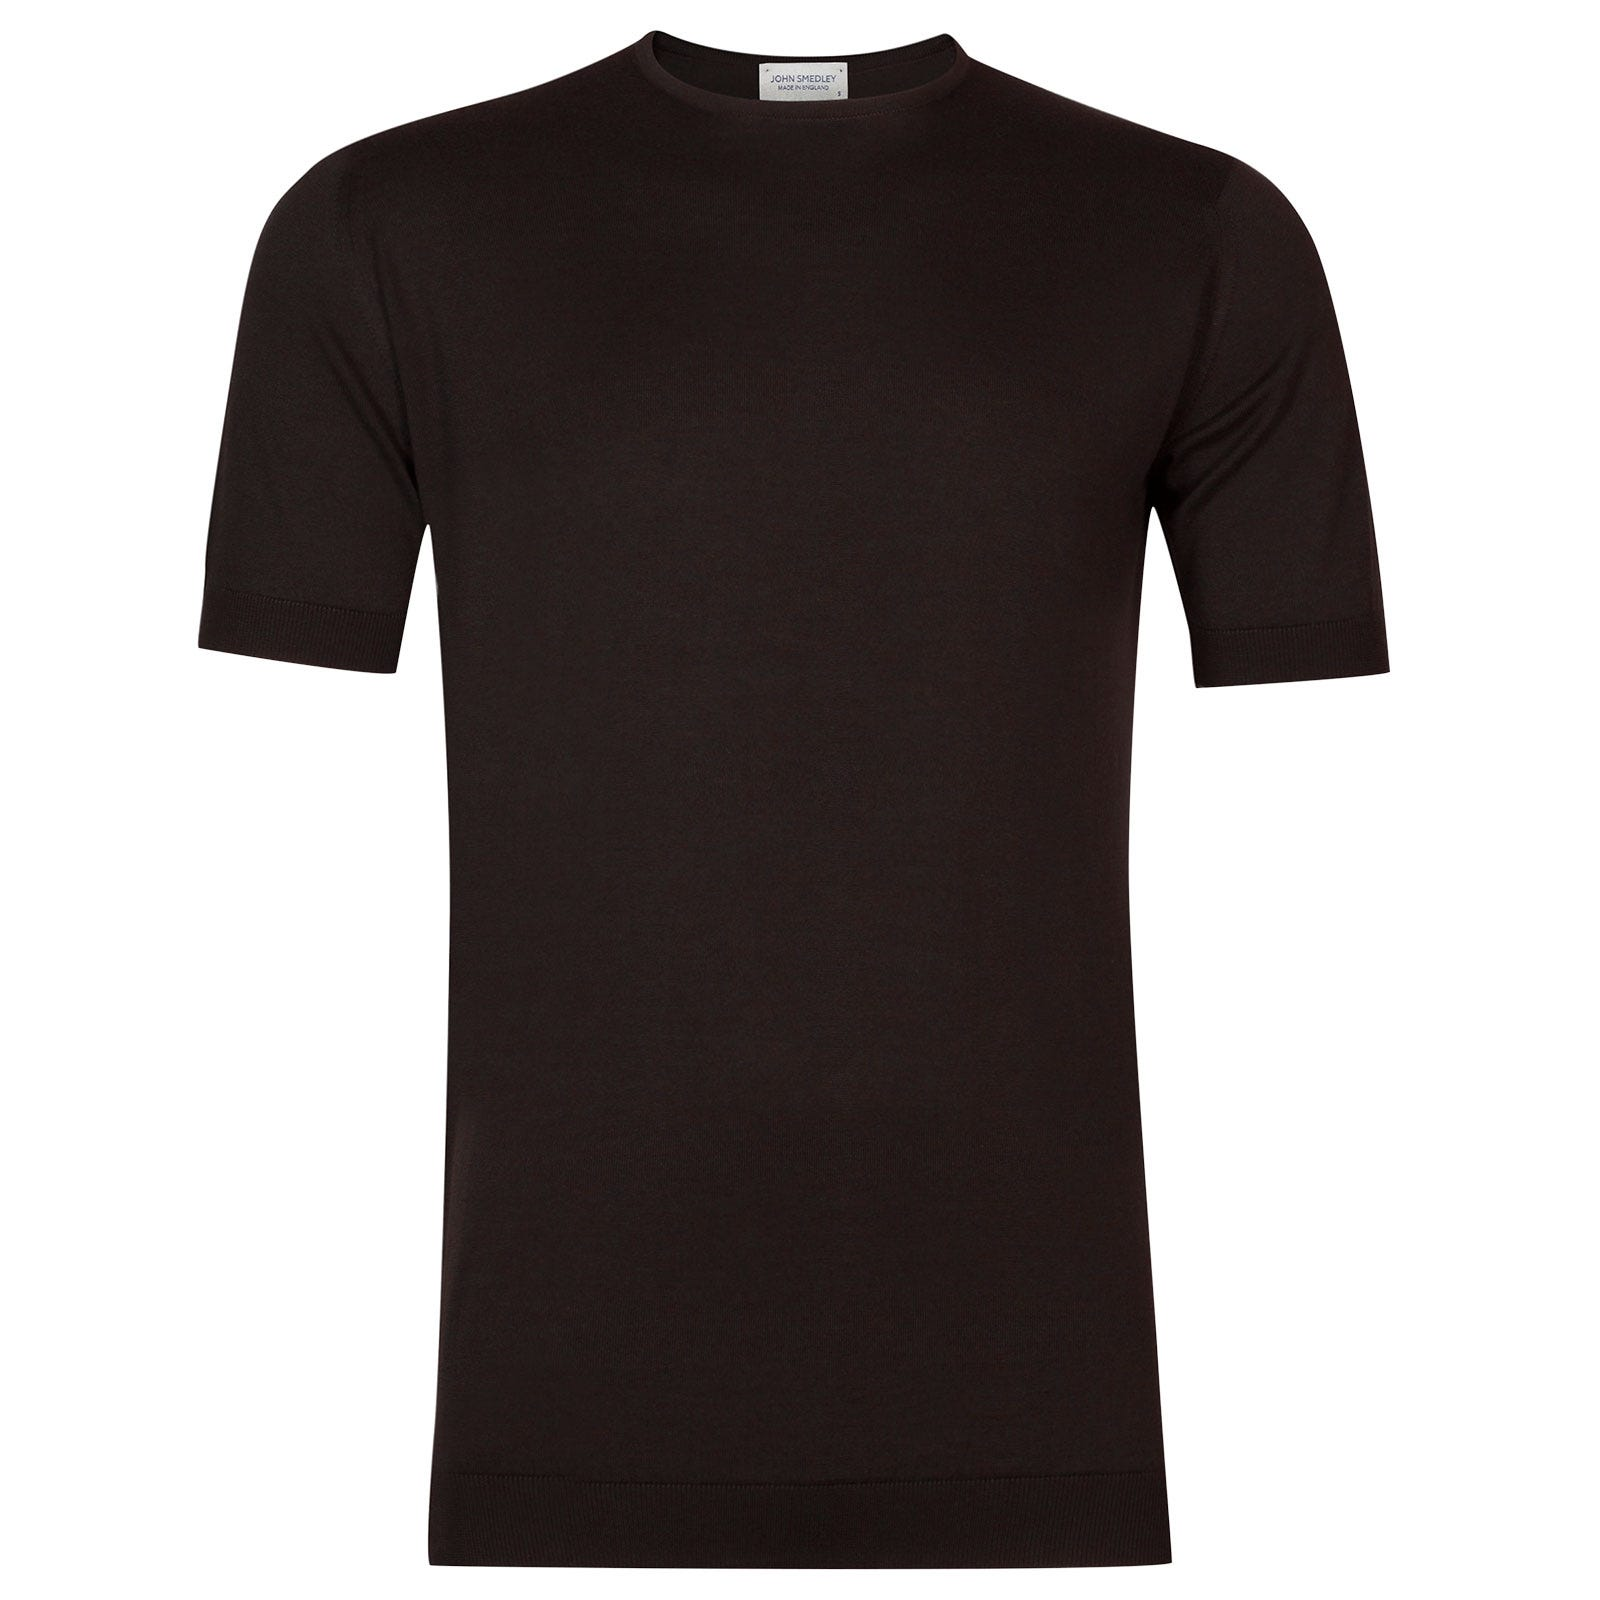 John Smedley Belden Sea Island Cotton T-shirt in Dark Leather-L